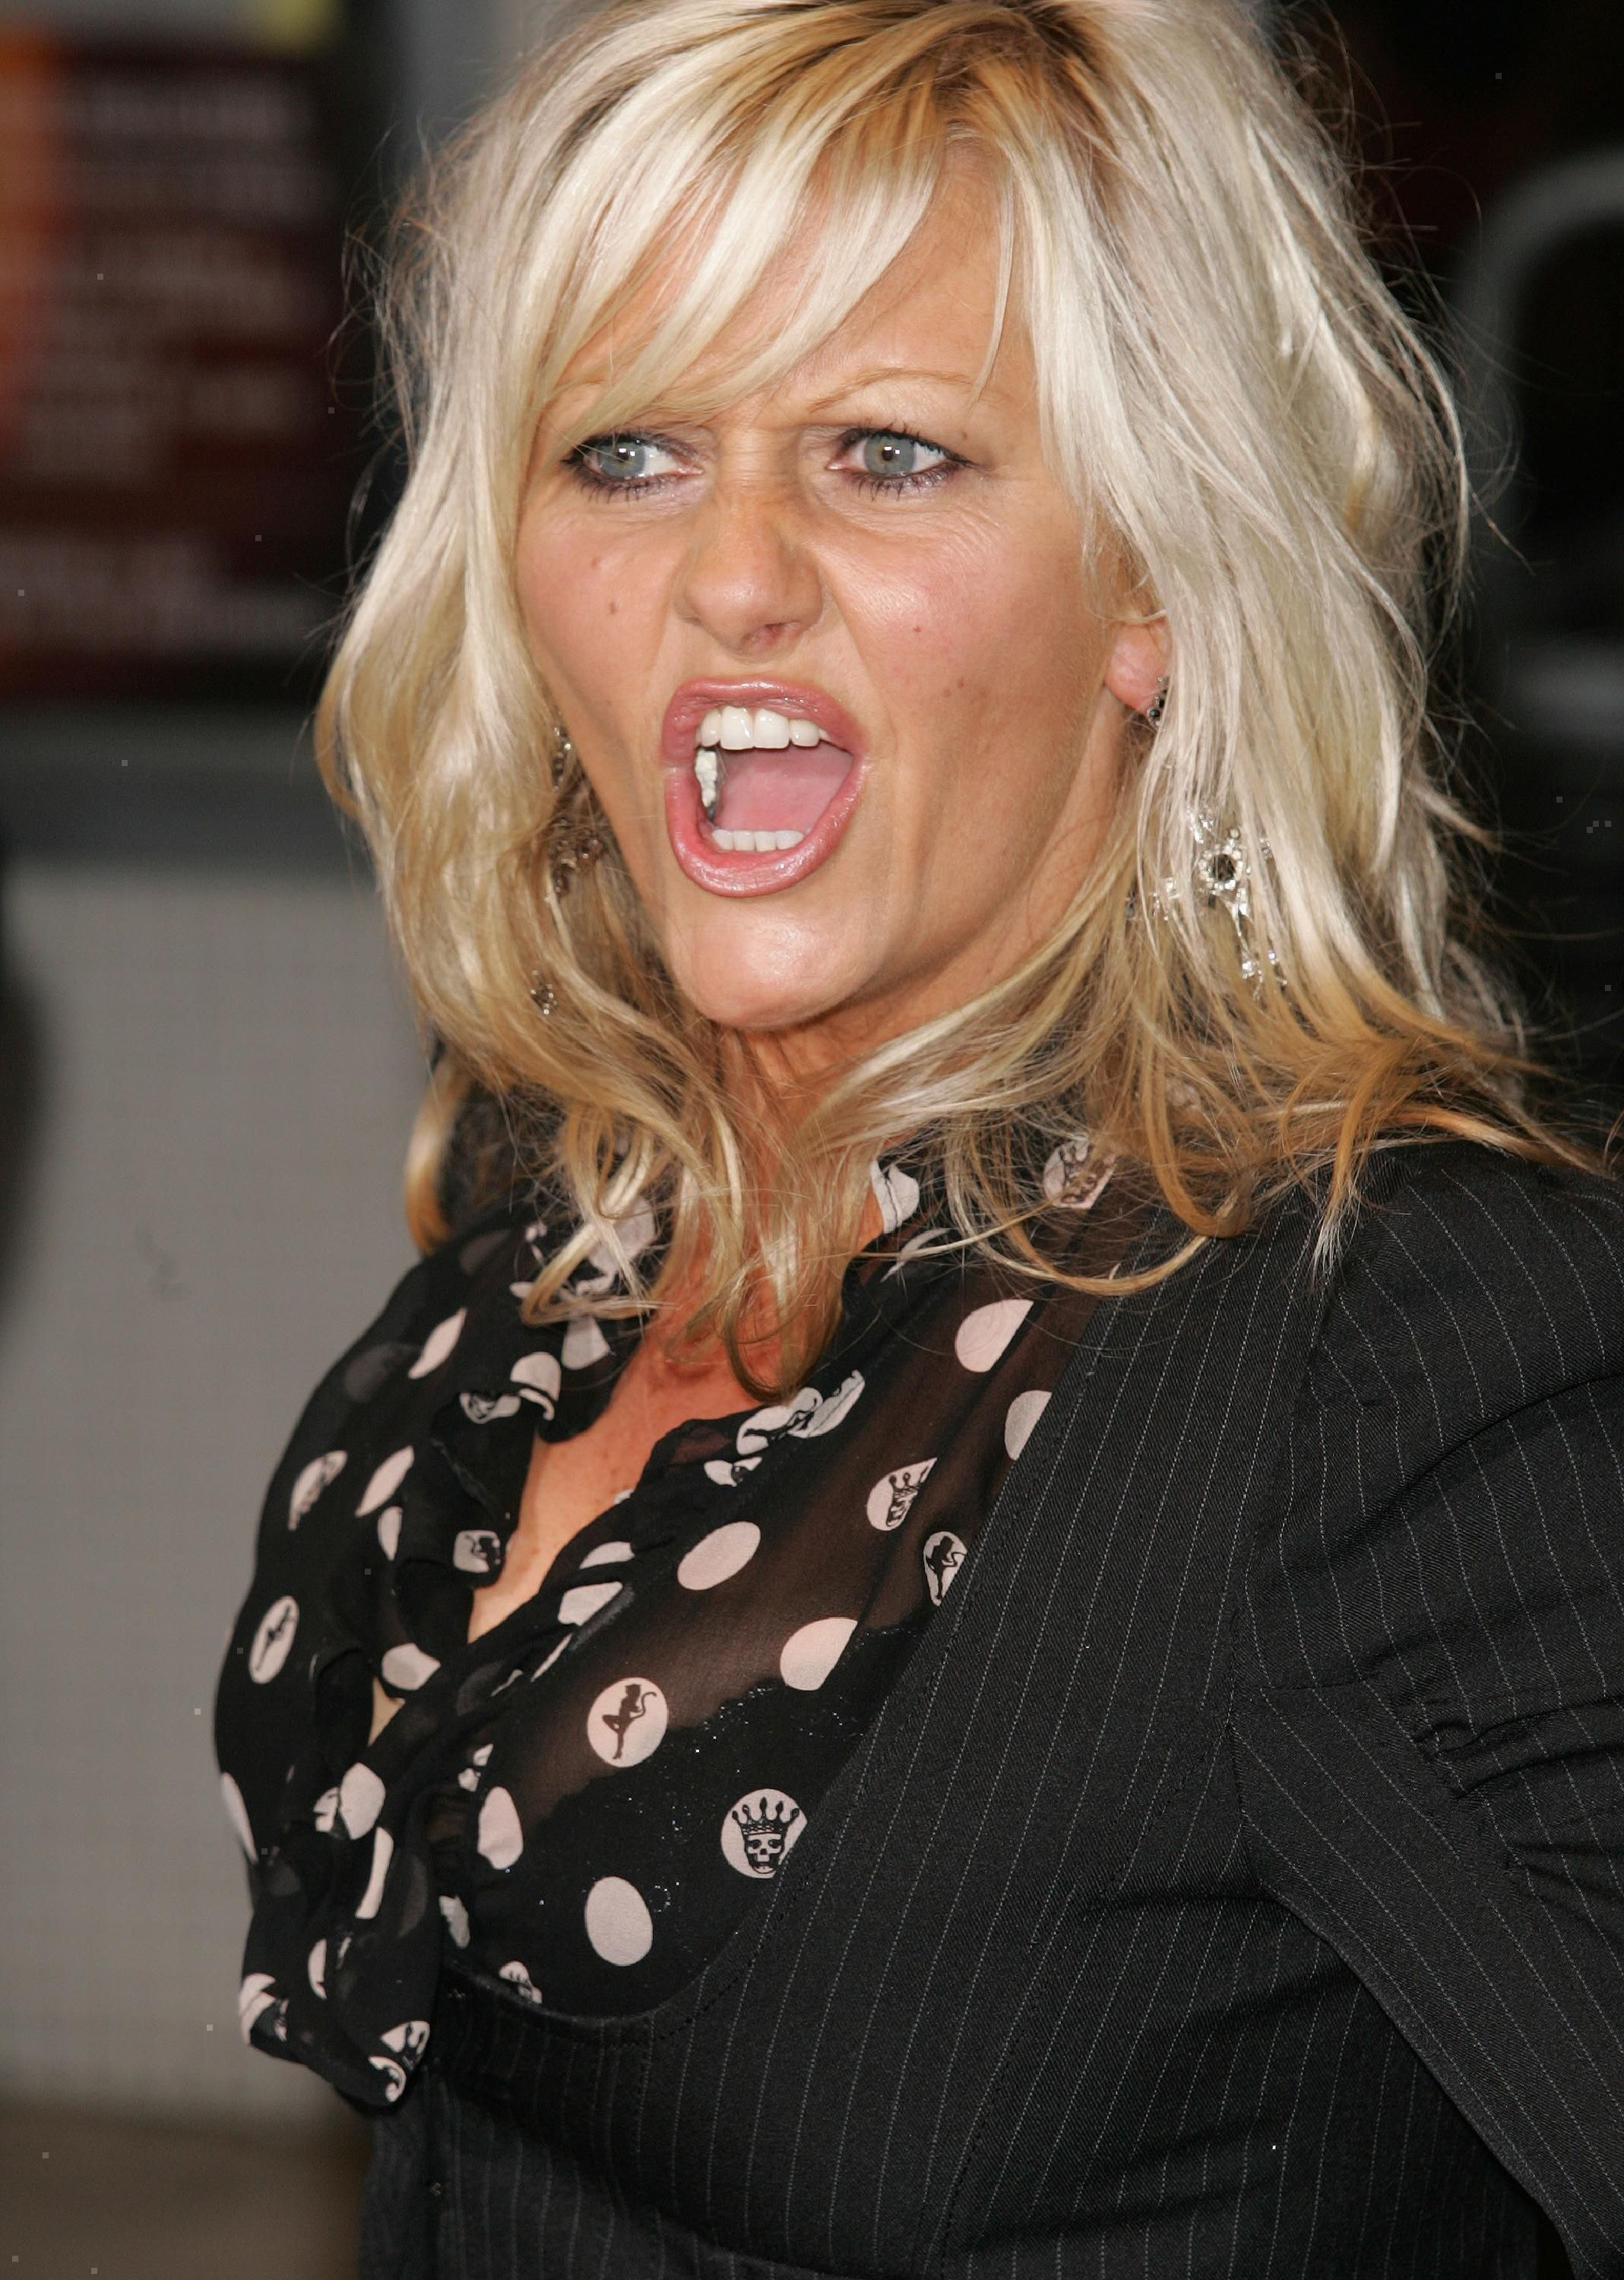 Rather camille coduri nude with